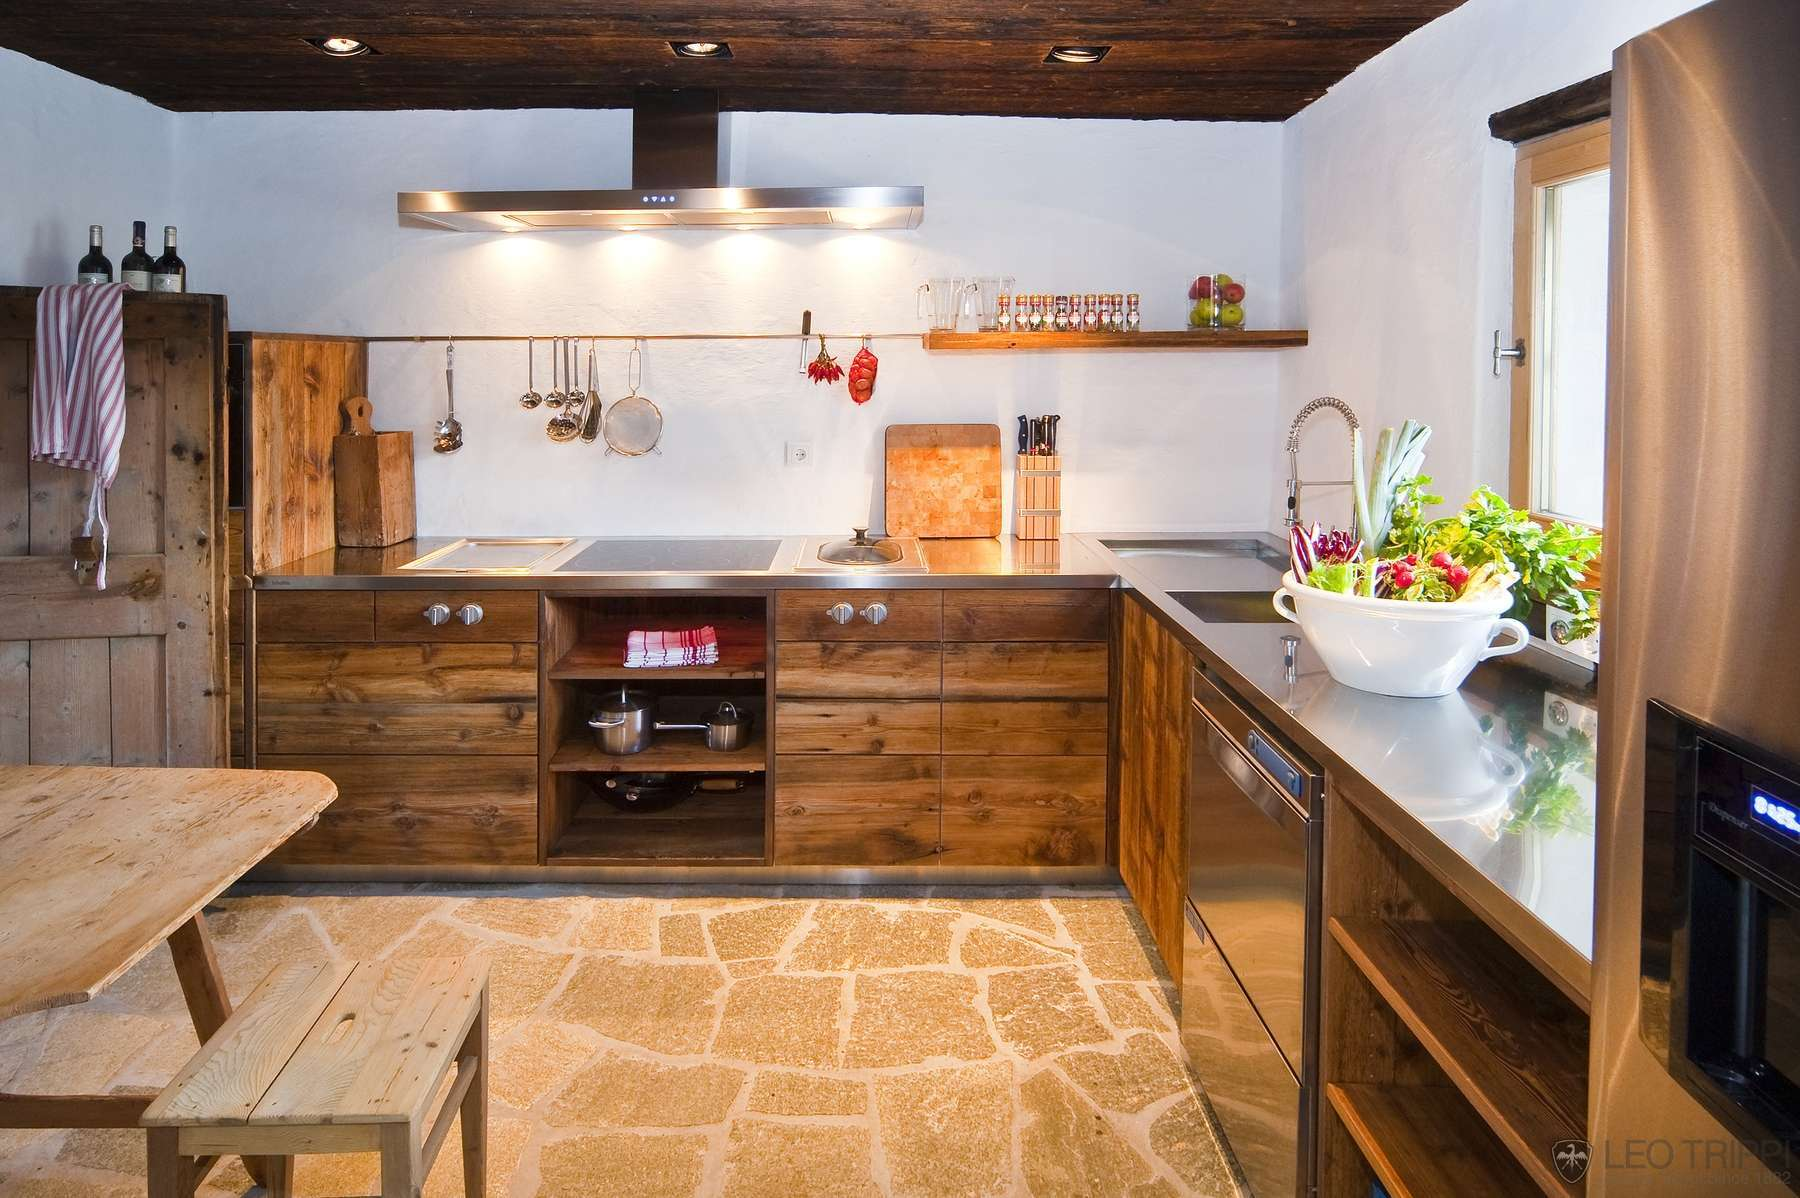 Chalet Kitchen Interior: Description, Design Tips with Photos. Stone tiled floor and wooden imitating furniture facades